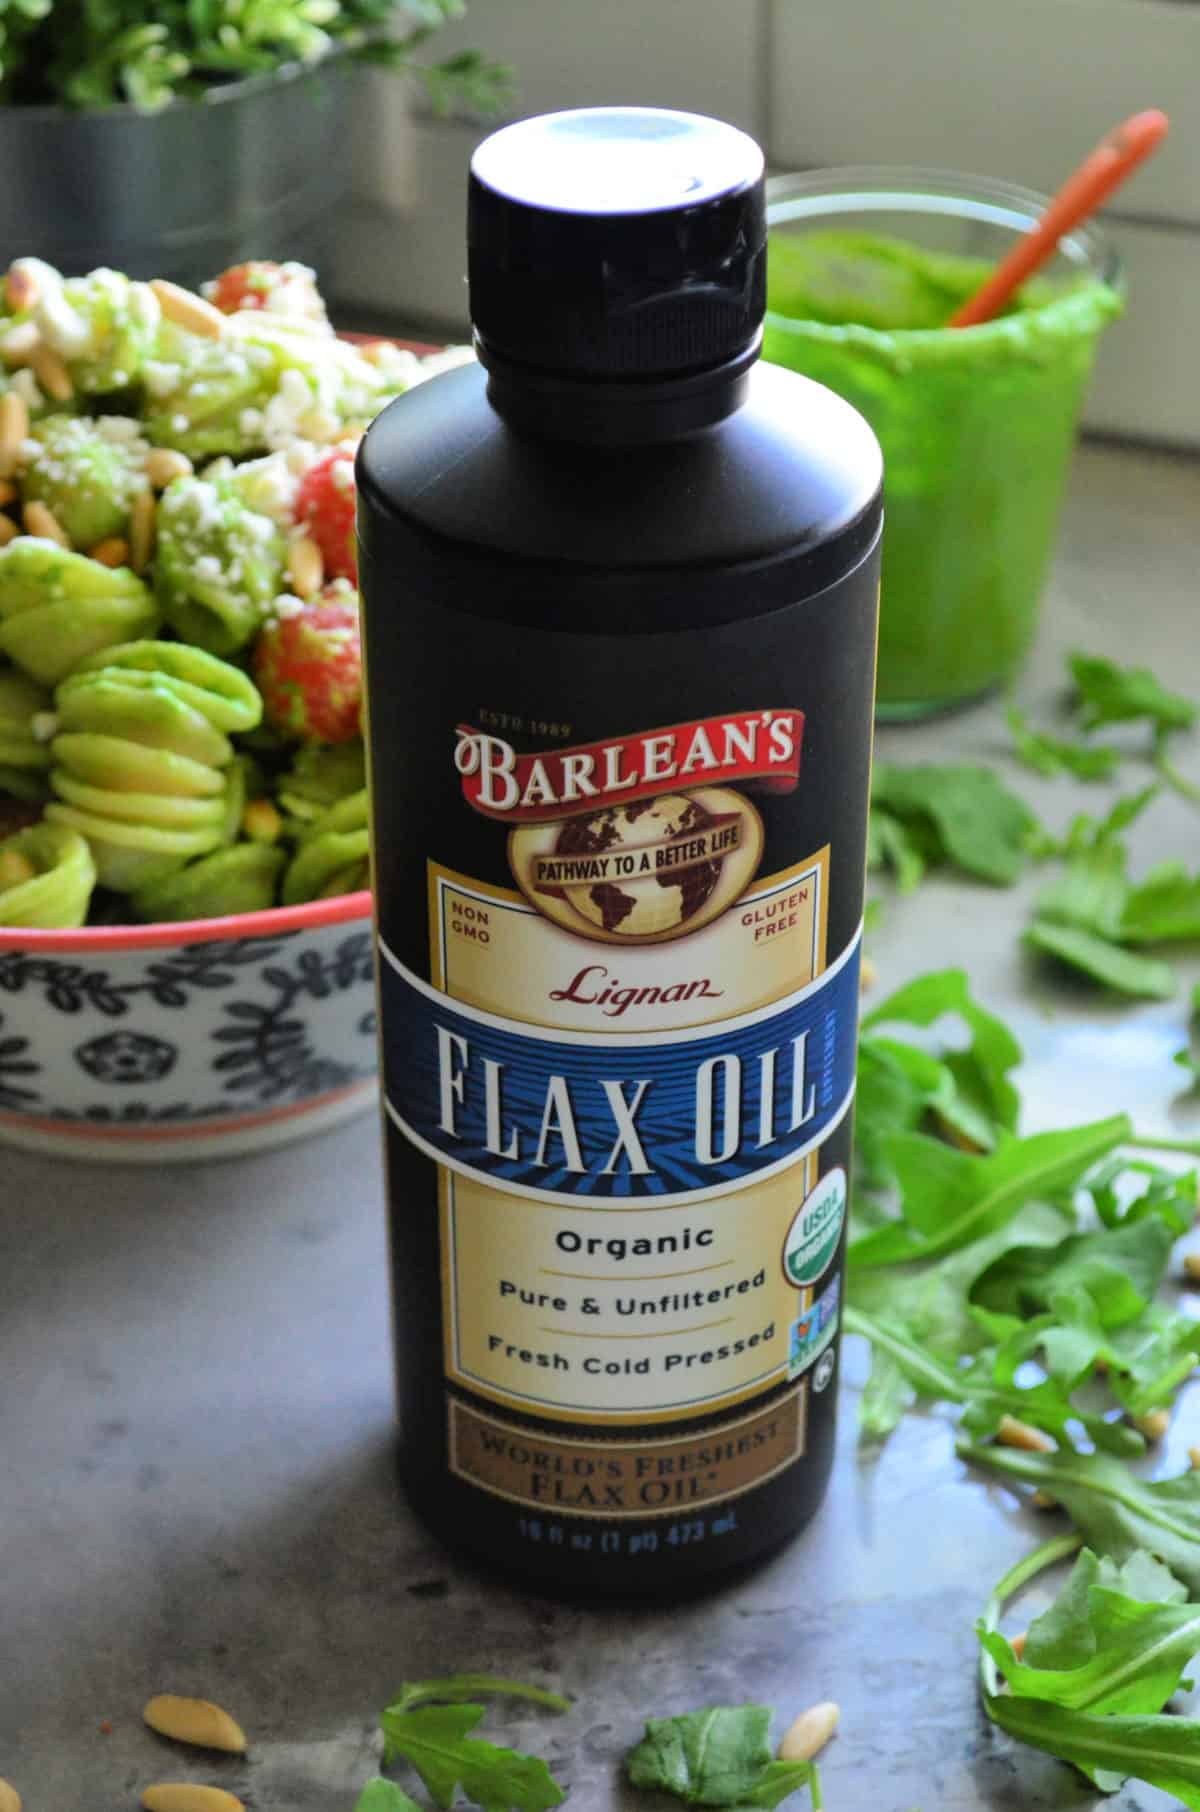 Close up bottle of Barlean's Flax Oil on countertop with pasta salad blurred in background.